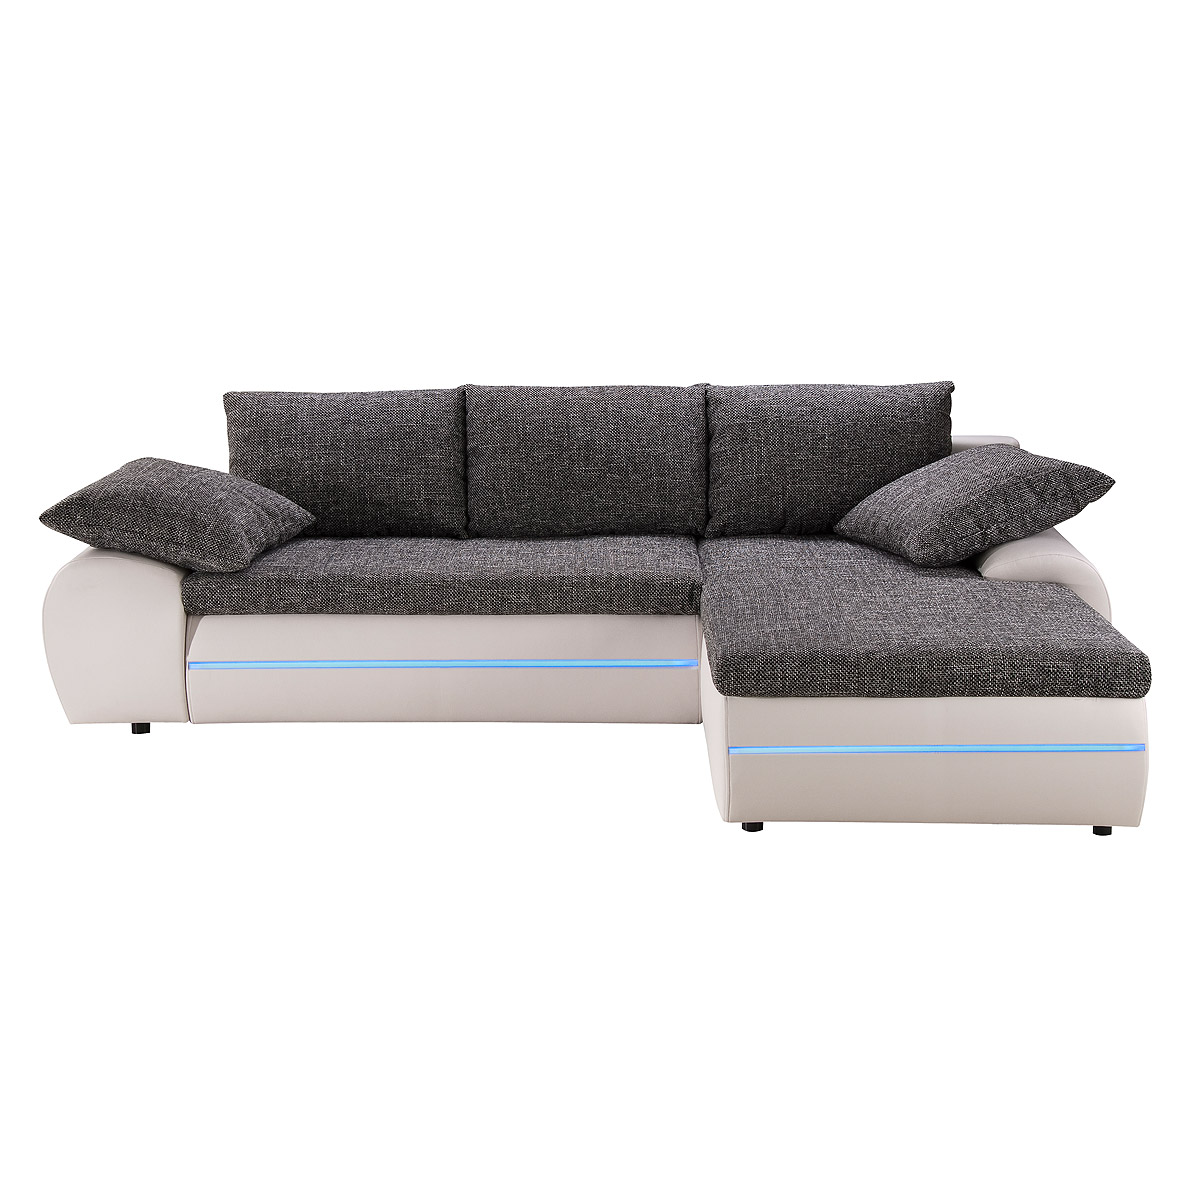 ecksofa dubai sofa wohnlandschaft wei schwarz silber inkl rgb led beleuchtung ebay. Black Bedroom Furniture Sets. Home Design Ideas